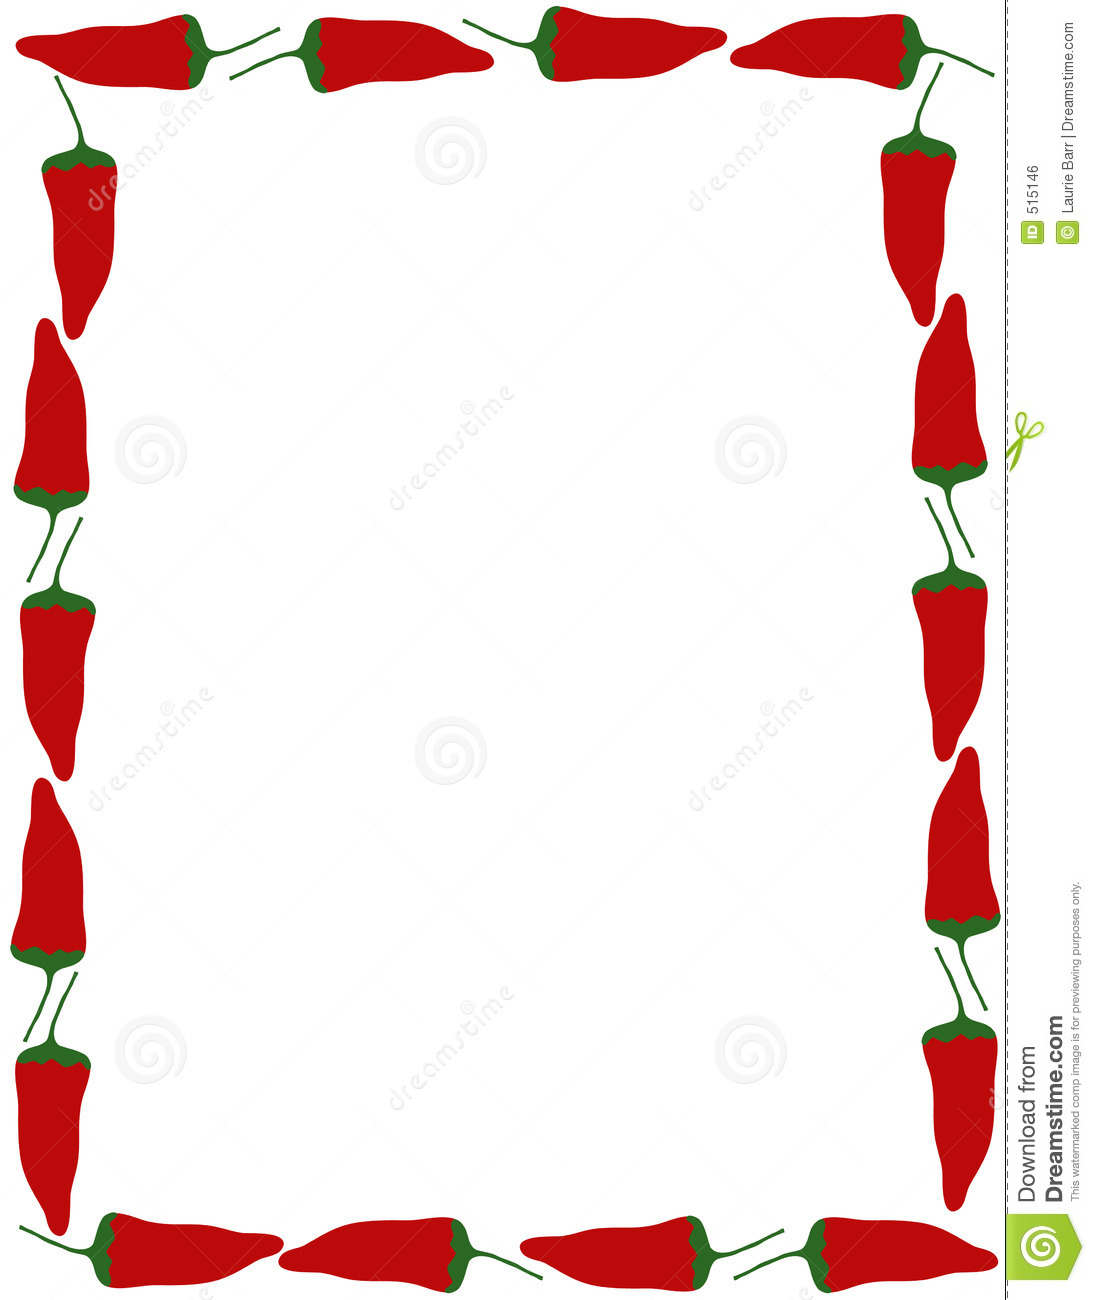 Mexican Style Borders Clipart.